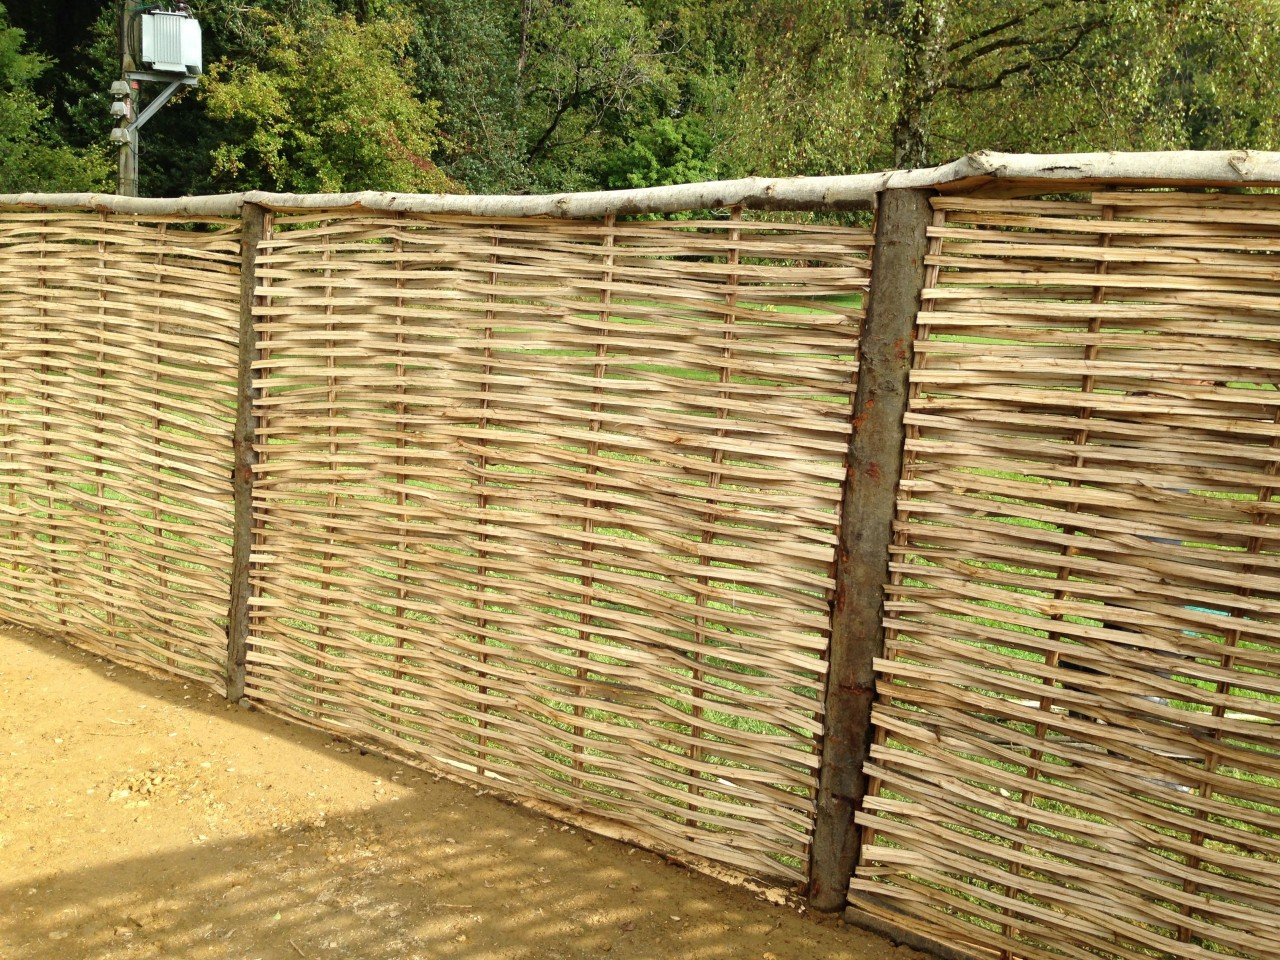 Continuous woven sussex fencing panels ben law - Woven wood wall panels ...